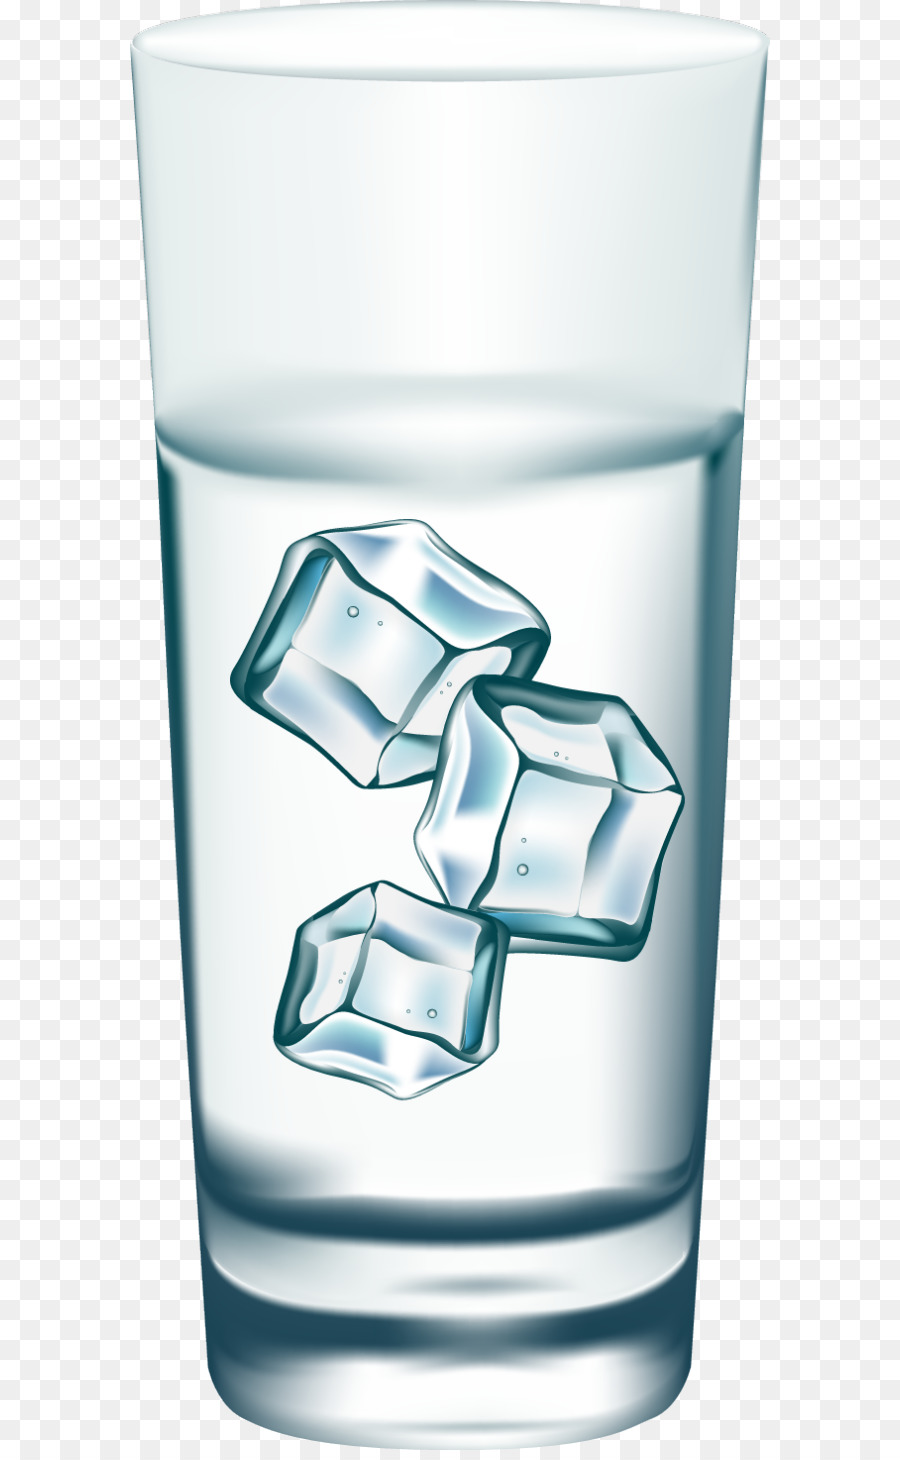 Glass of ice water clipart 4 » Clipart Station.